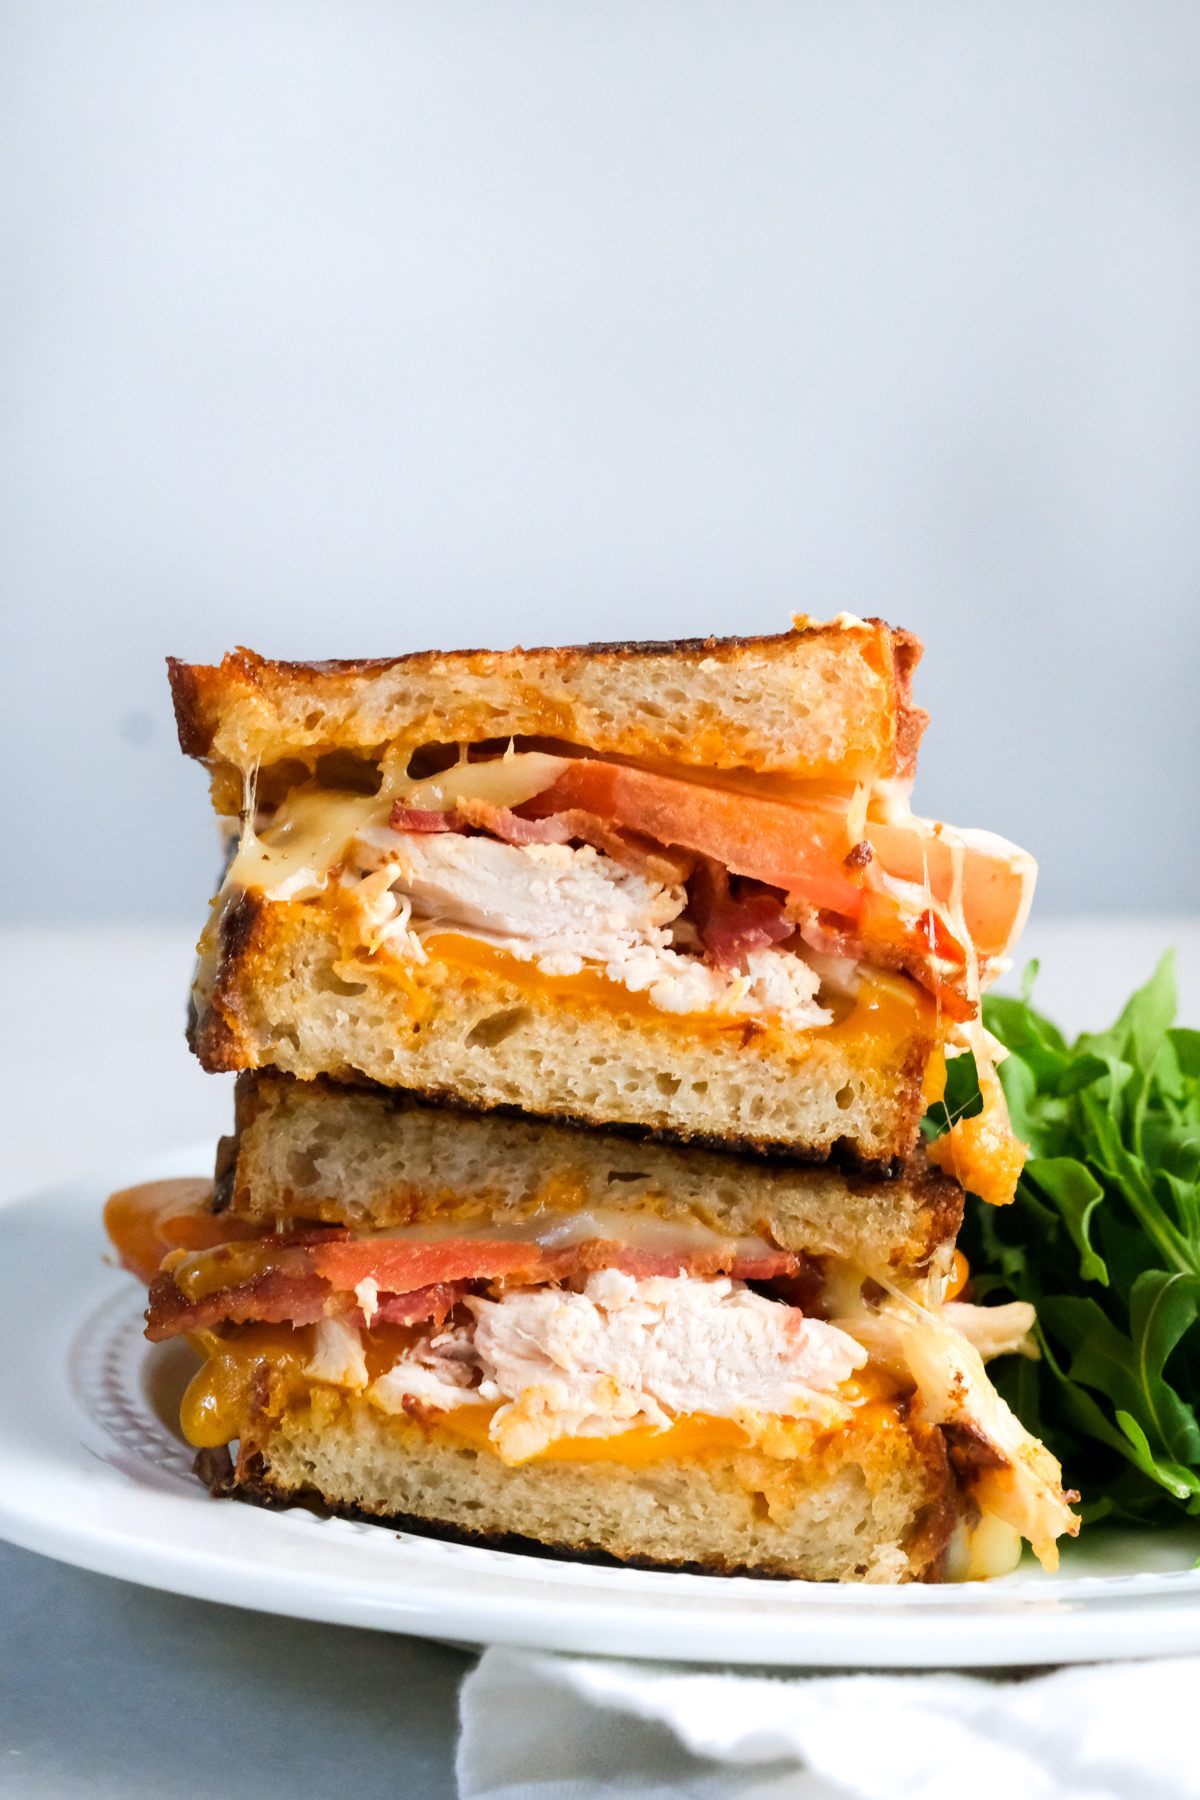 chipotle chicken bacon toastie with salad